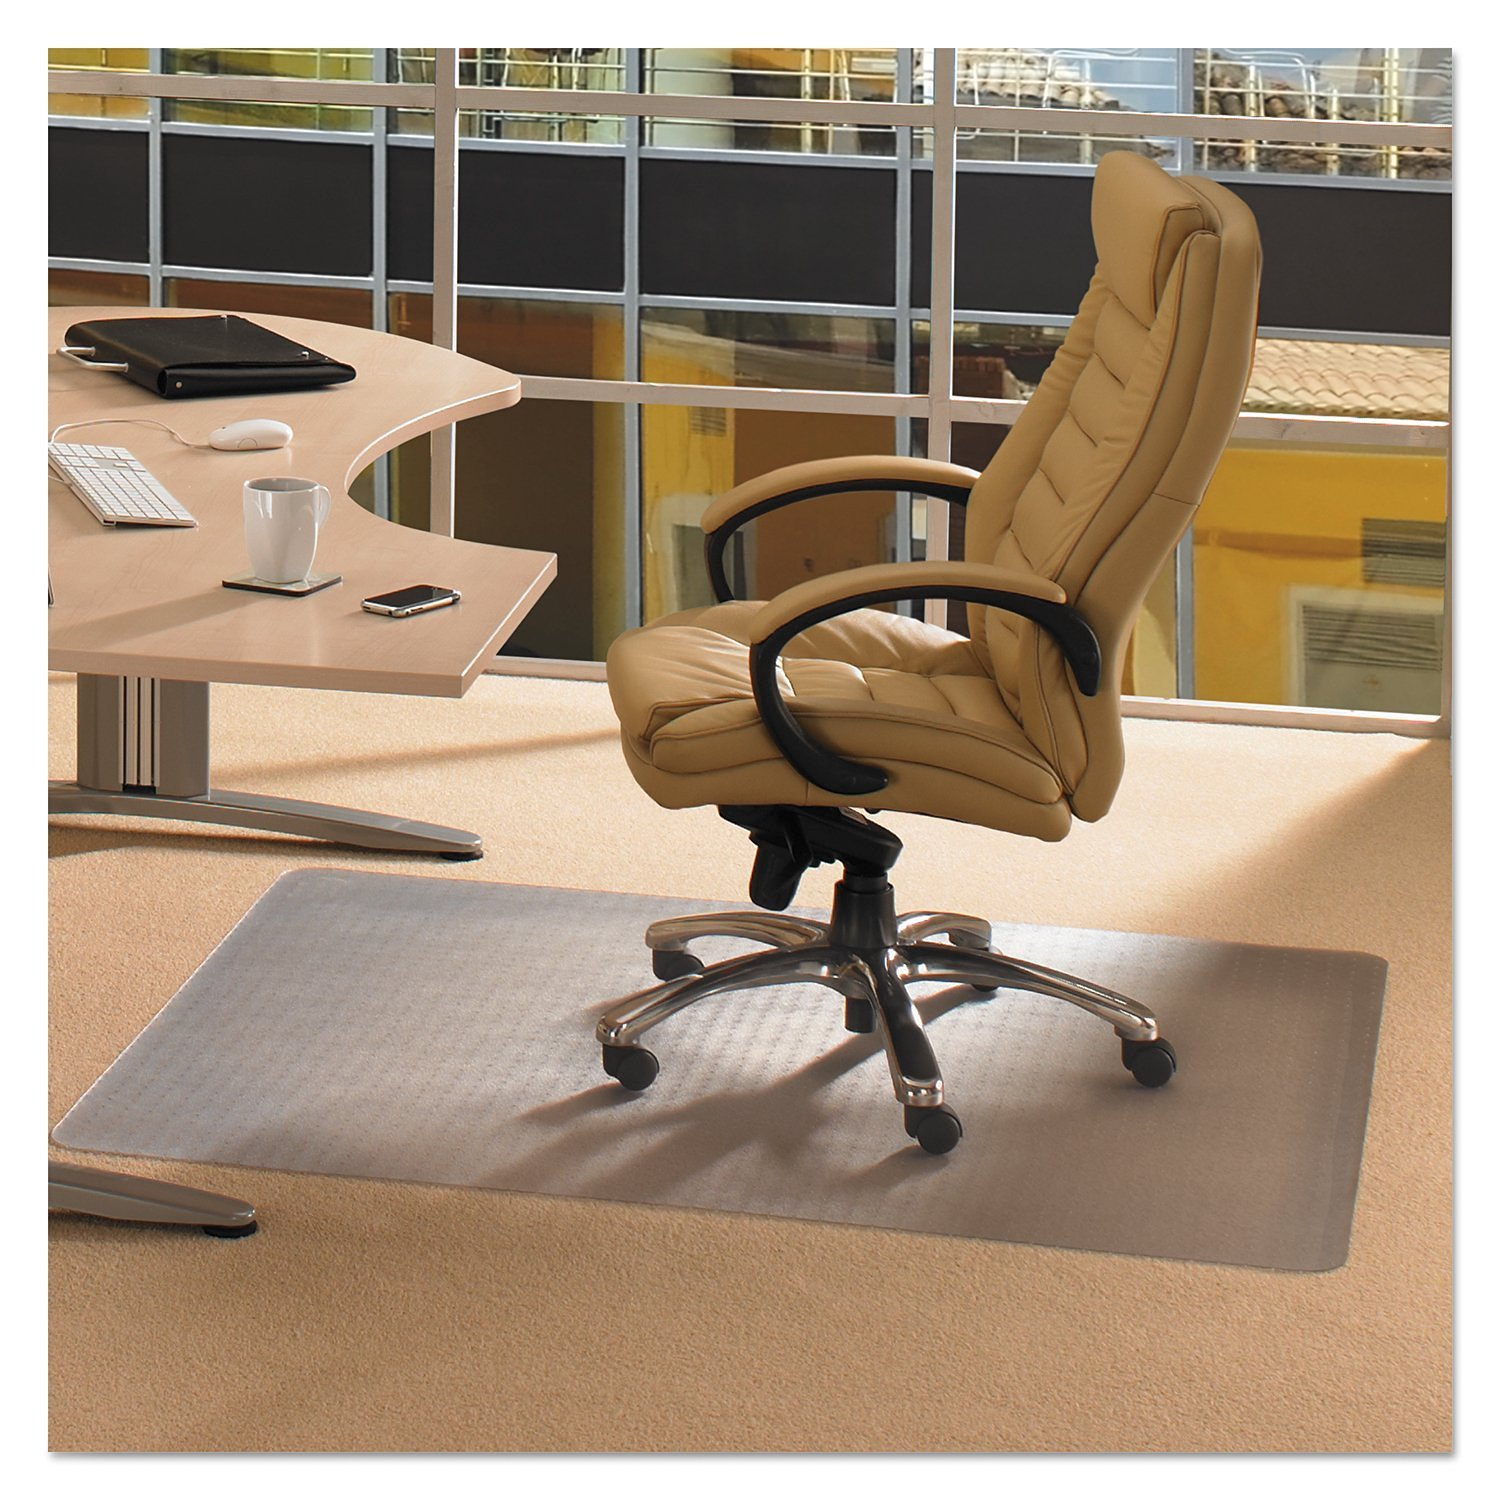 heavy chair duty desk home pin mat more check office at furniture